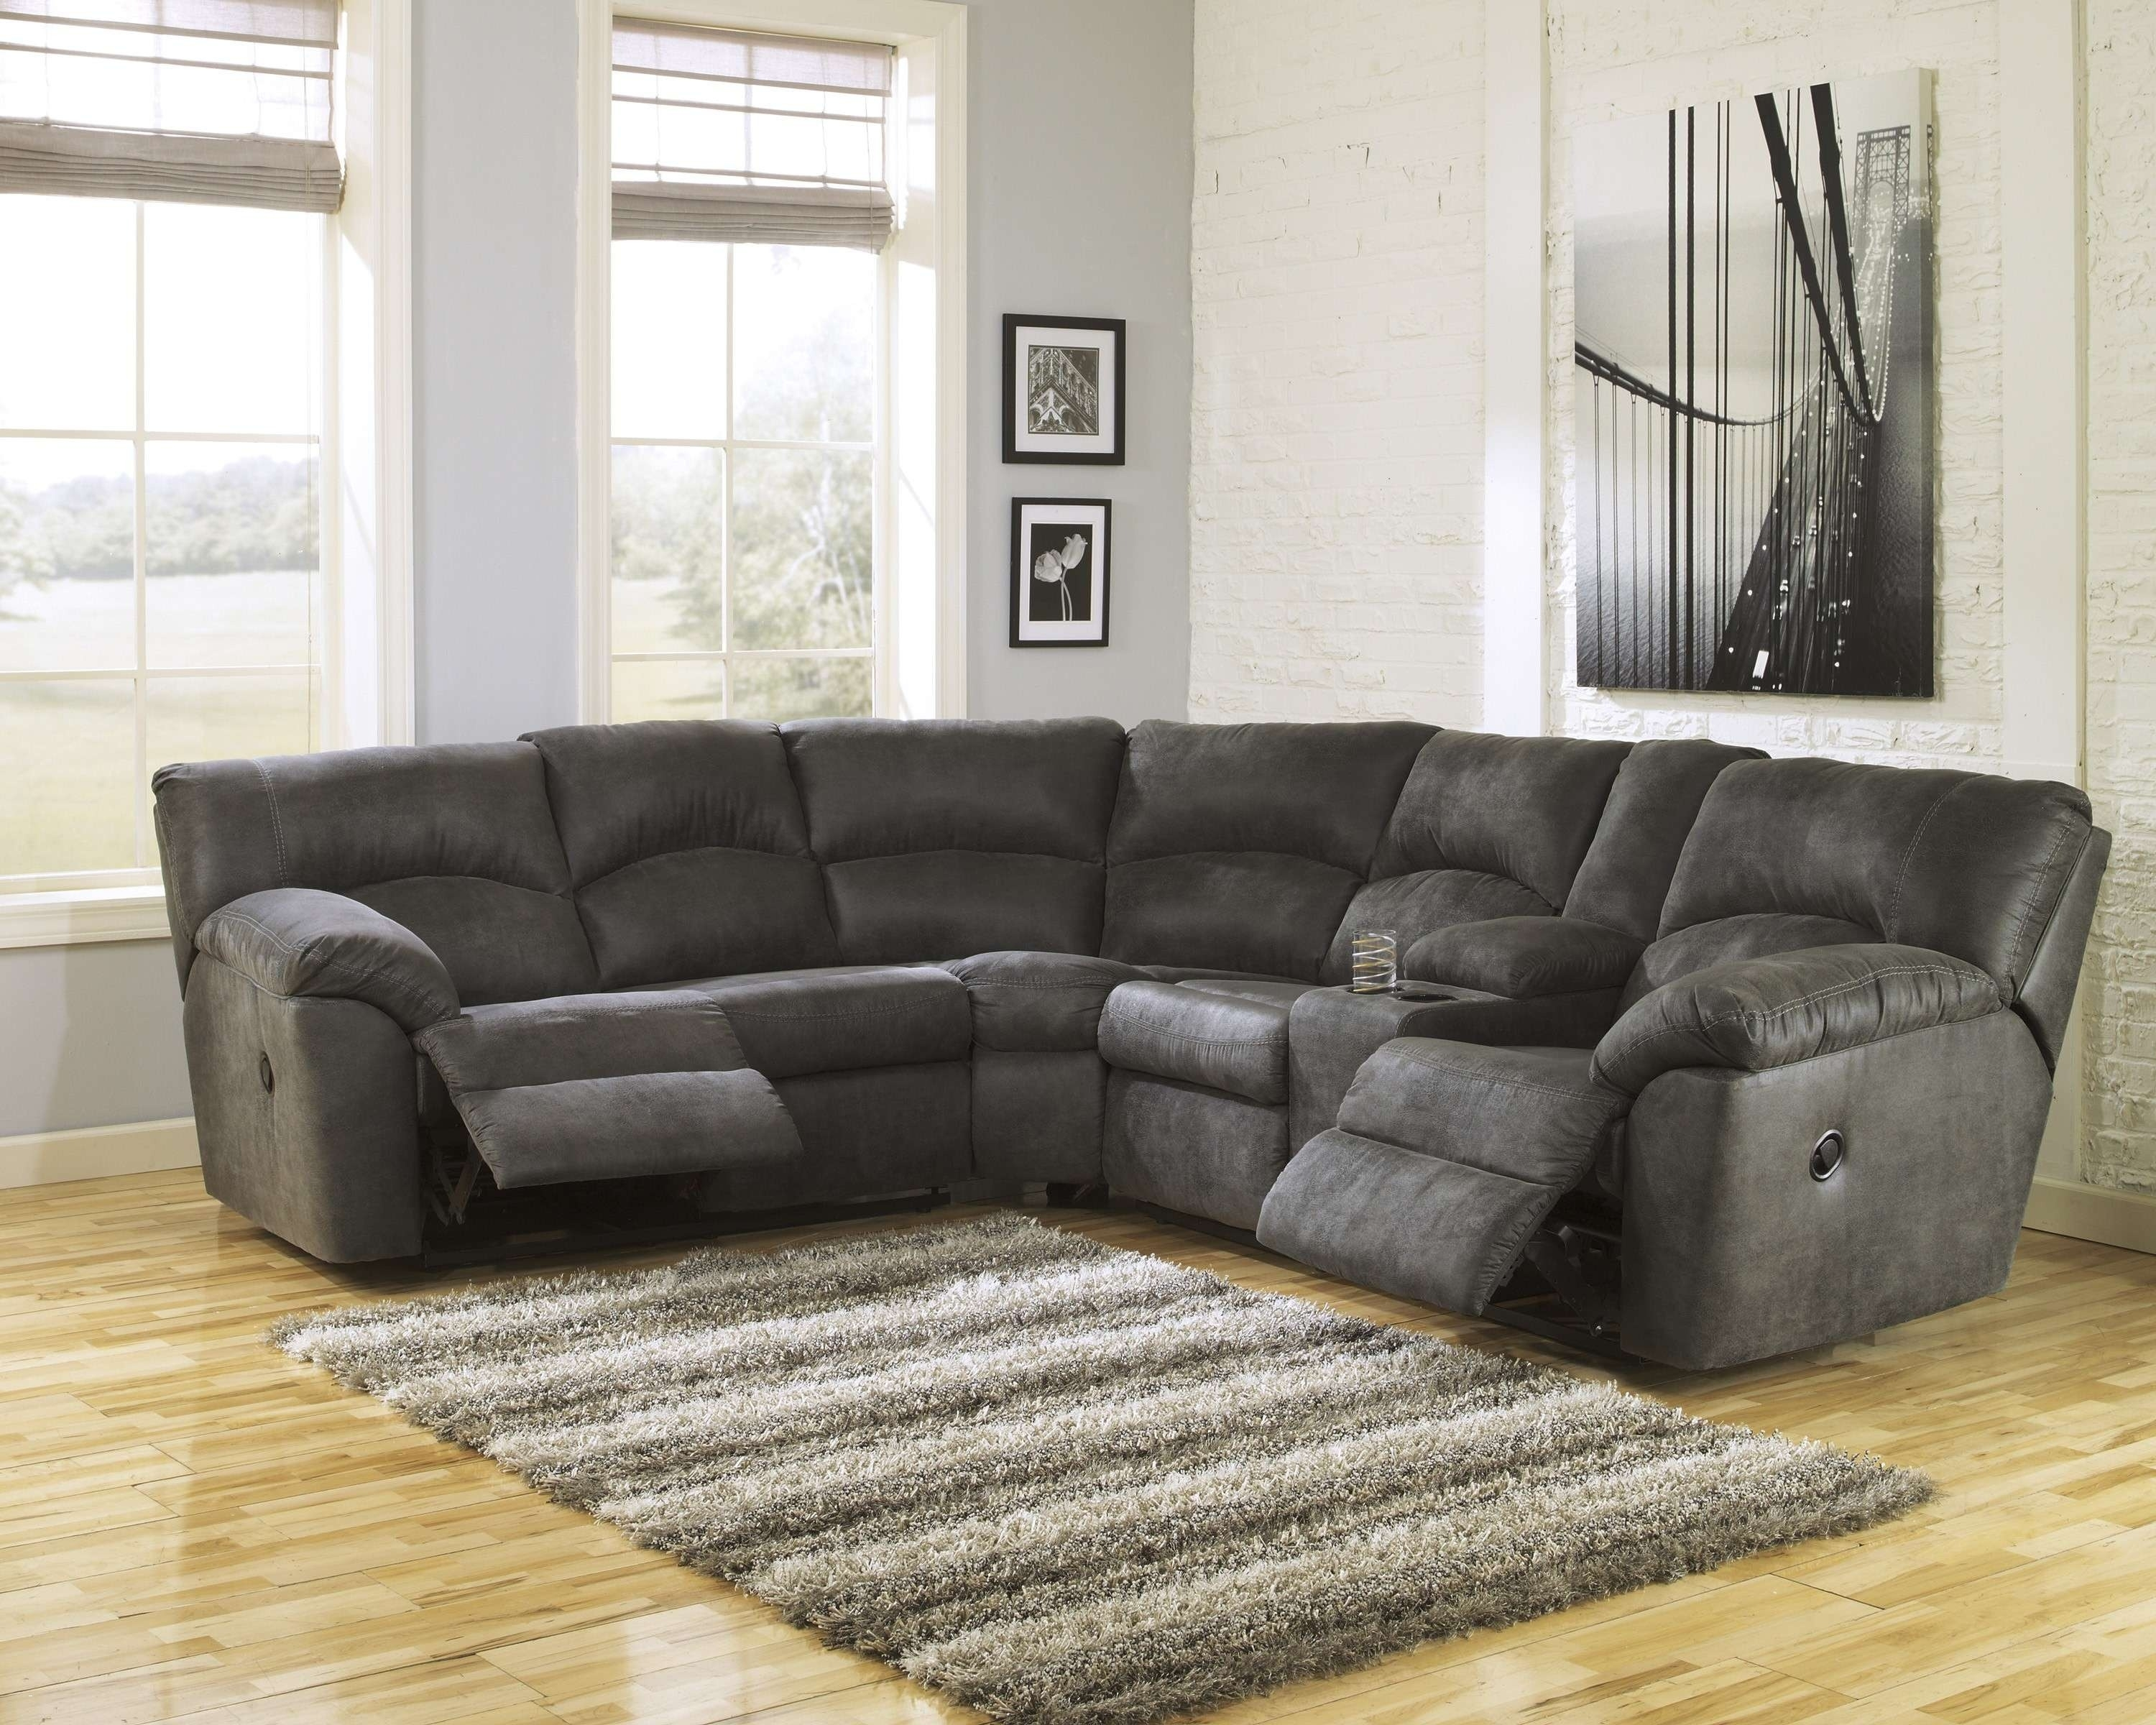 Dark Grey Sectional - Tidex regarding Lucy Grey 2 Piece Sectionals With Raf Chaise (Image 9 of 30)